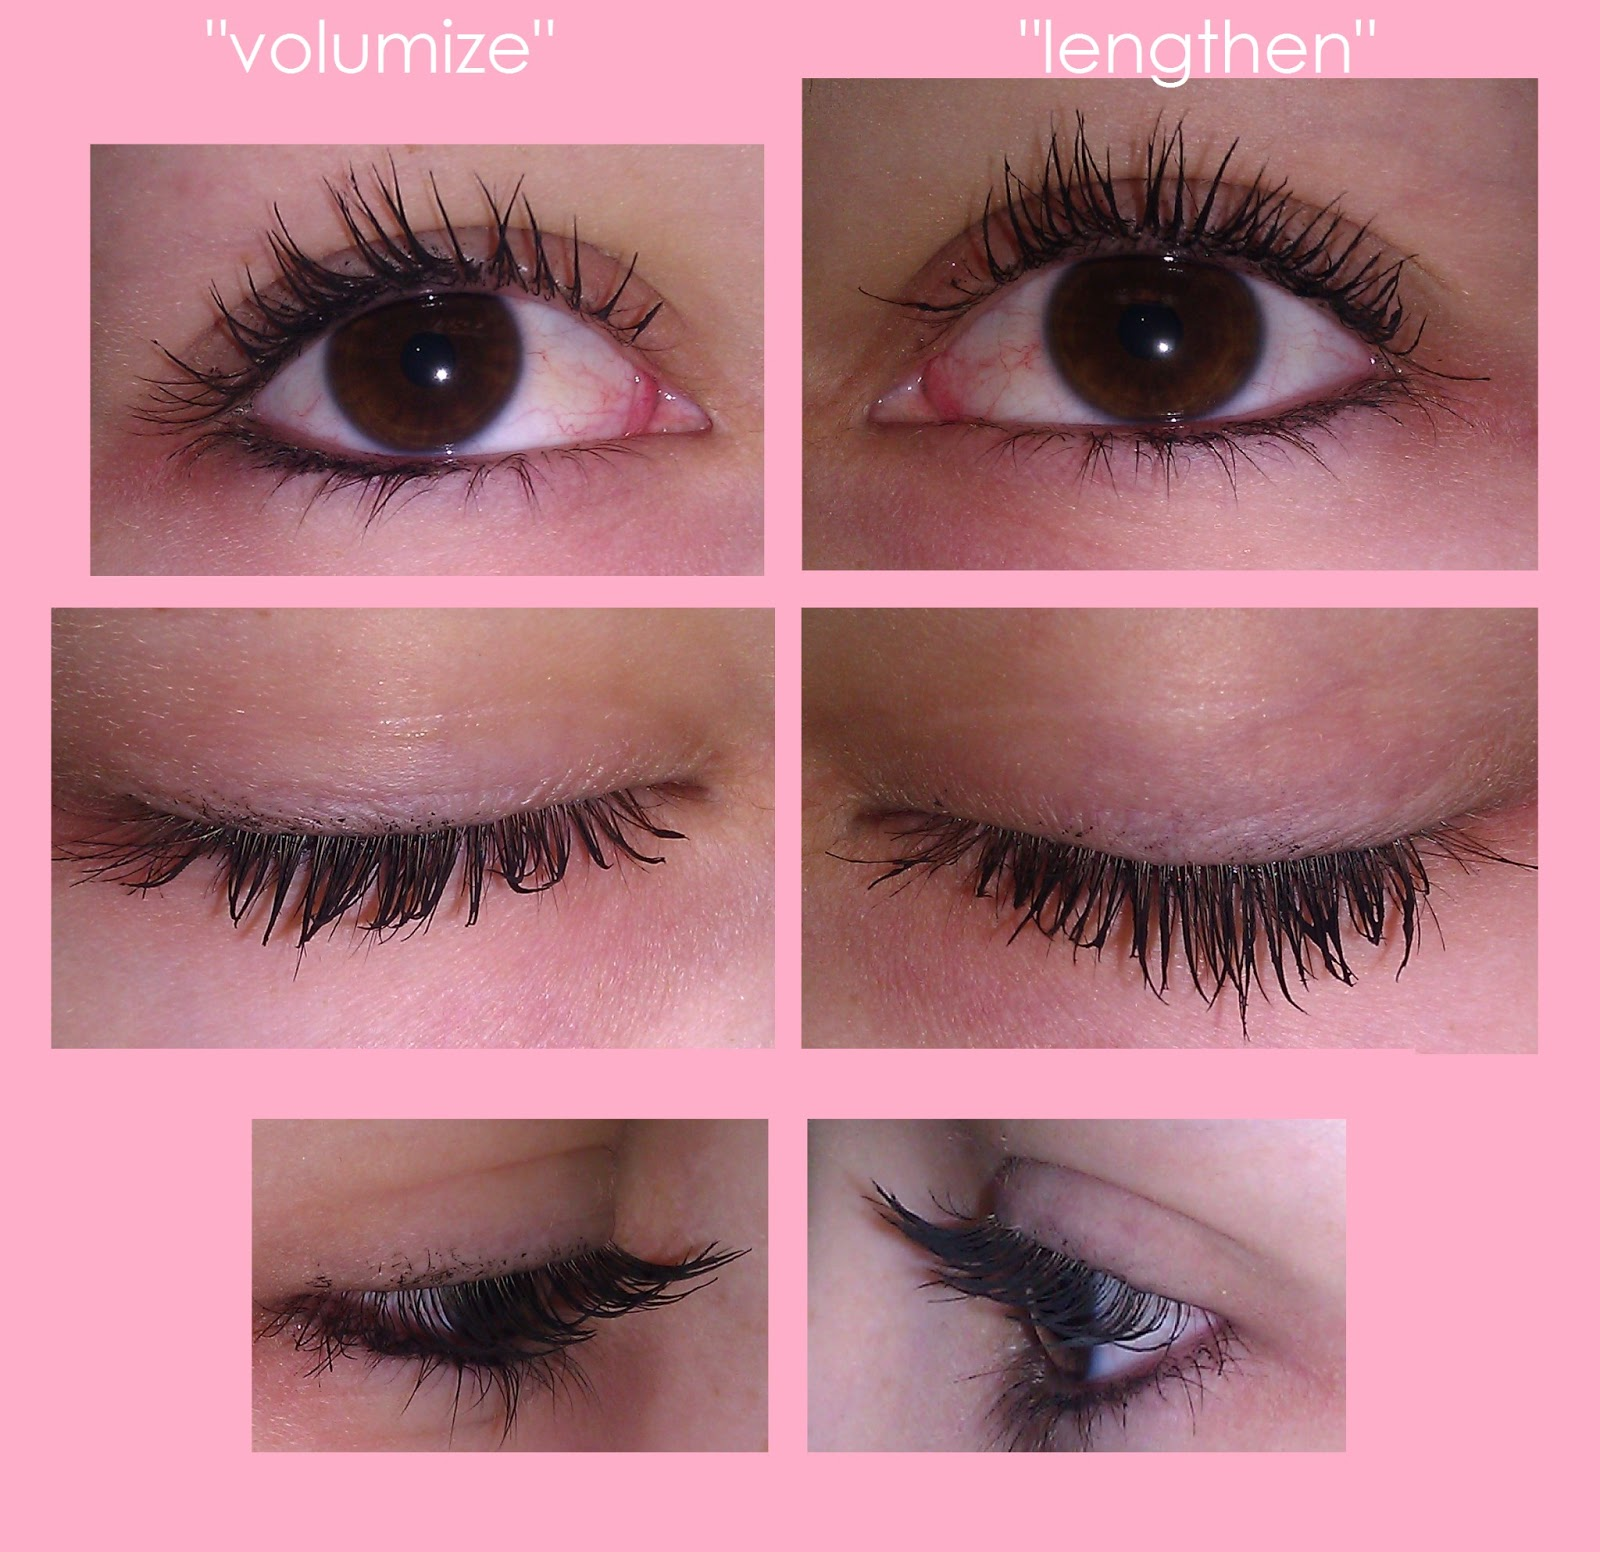 Lainamarie91 updated review flower beauty zoom in ultimate mascara izmirmasajfo